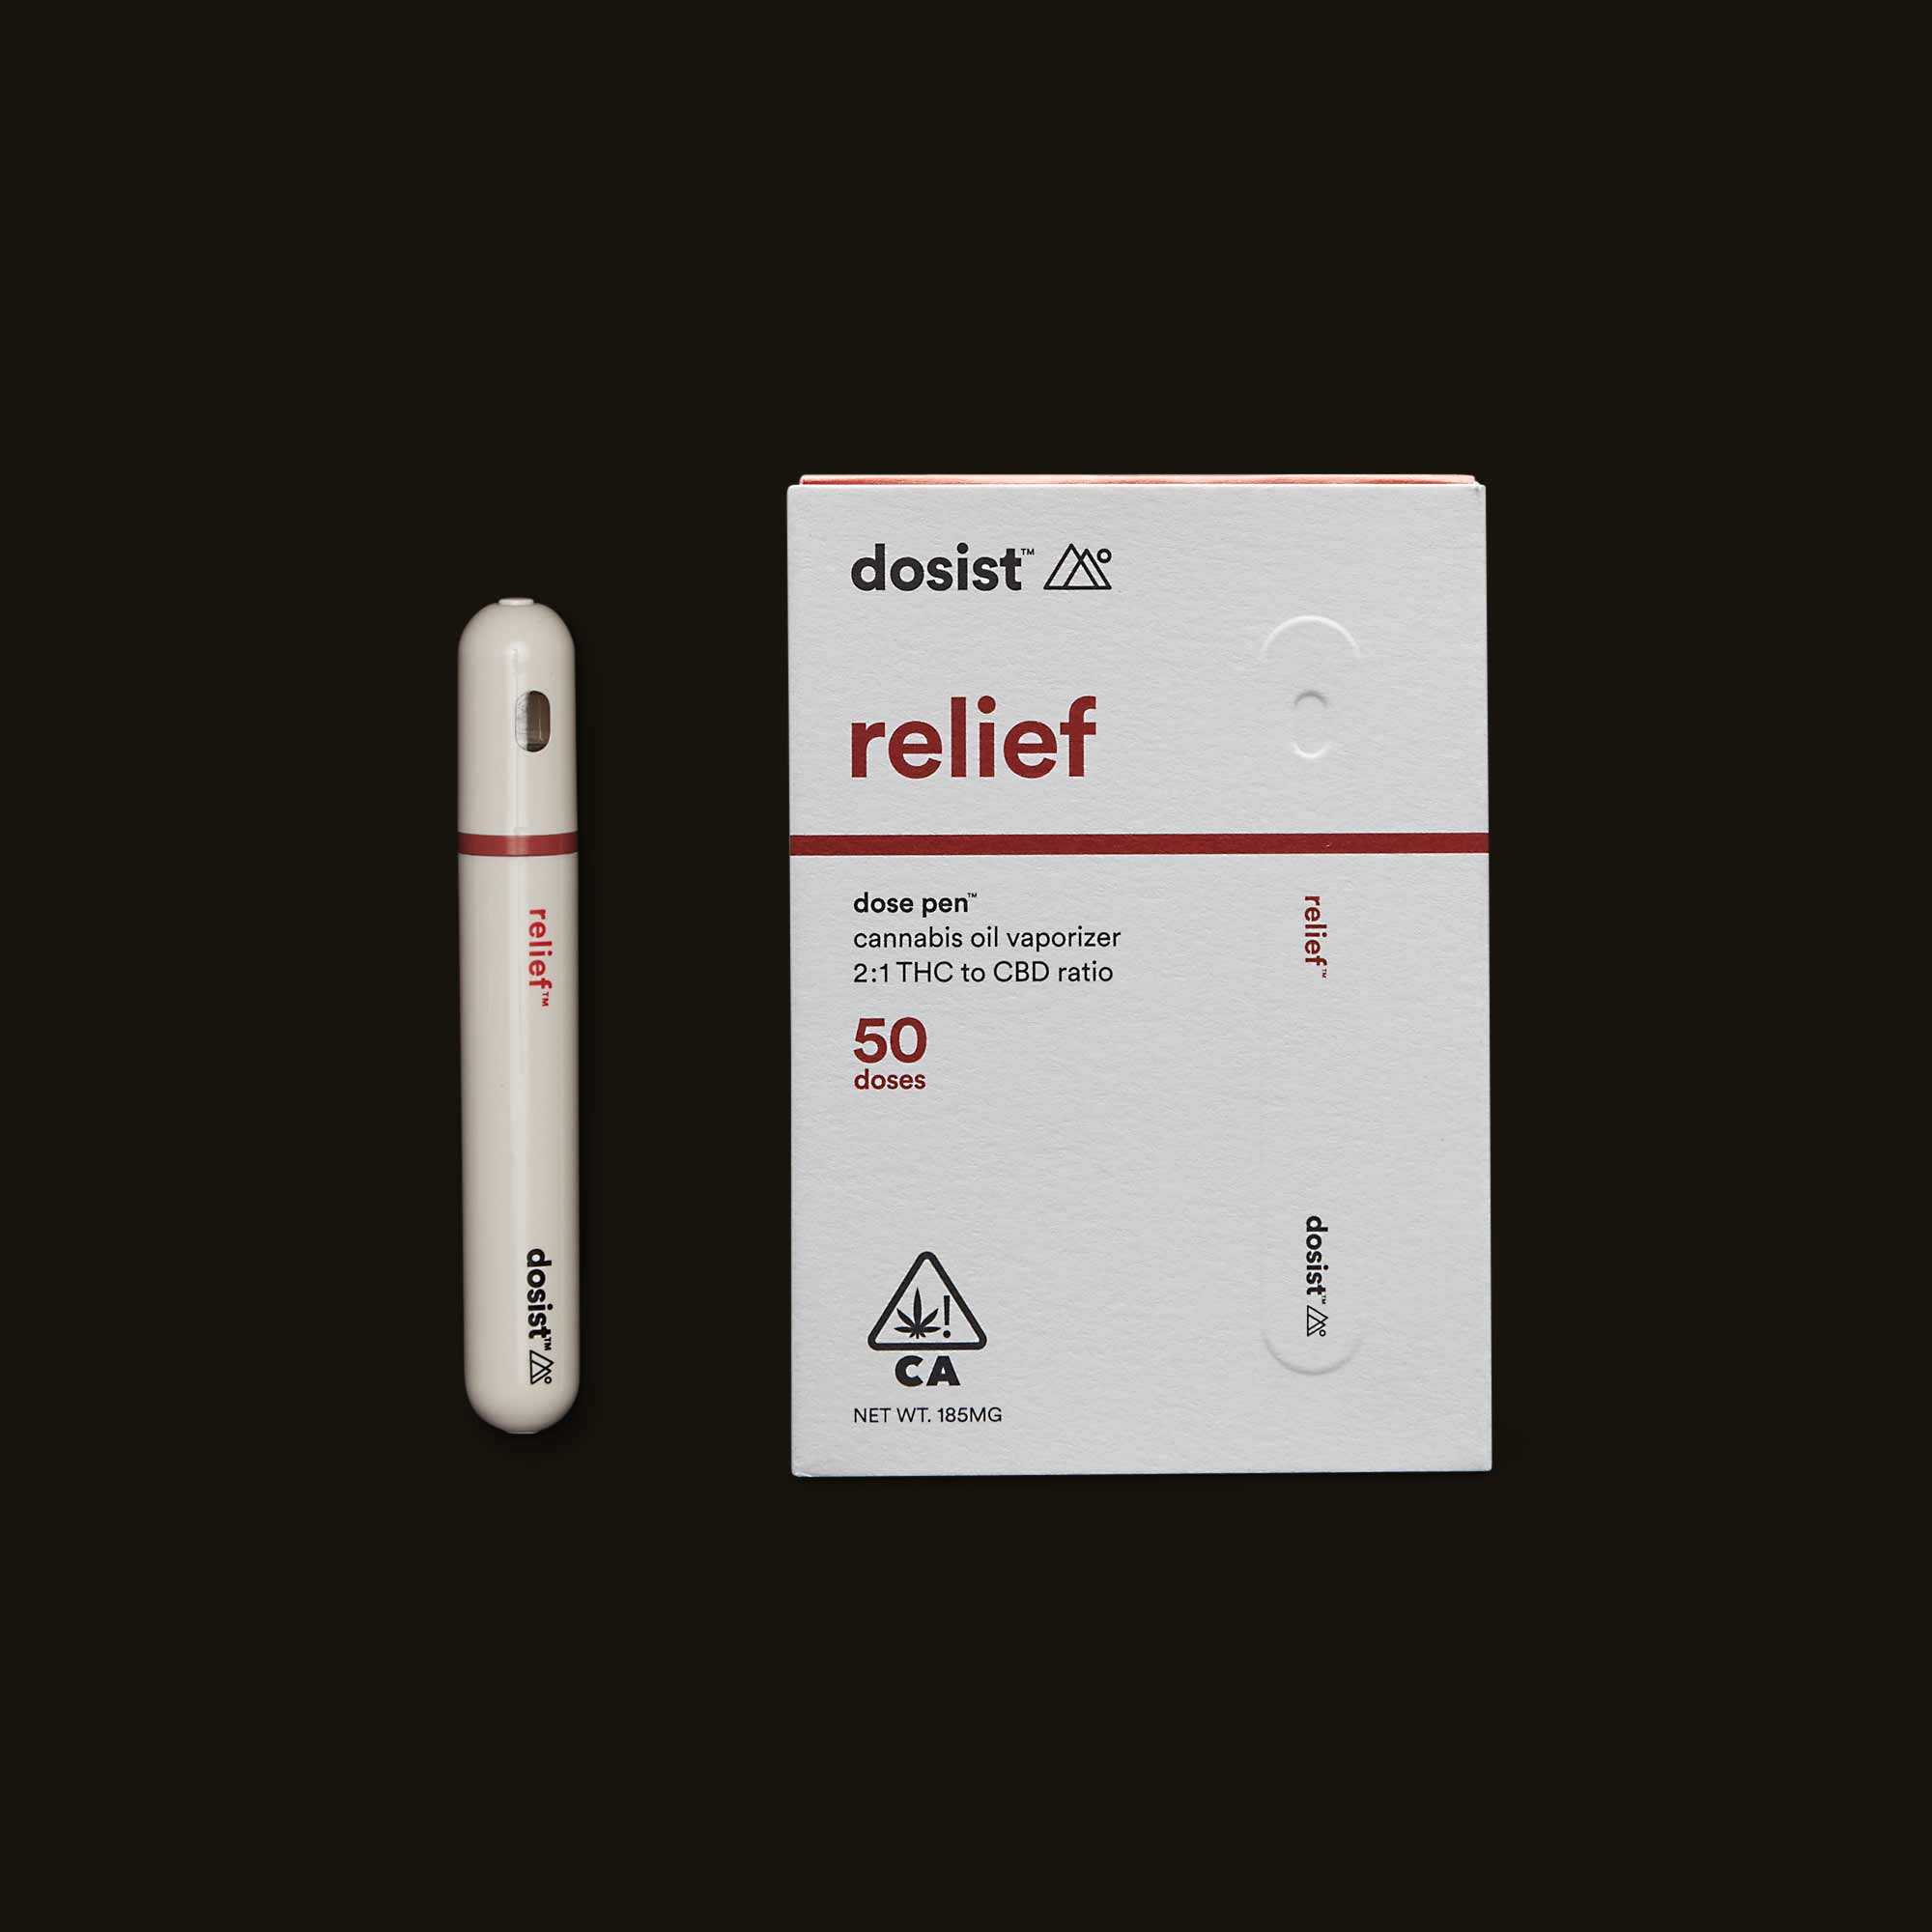 dosist relief